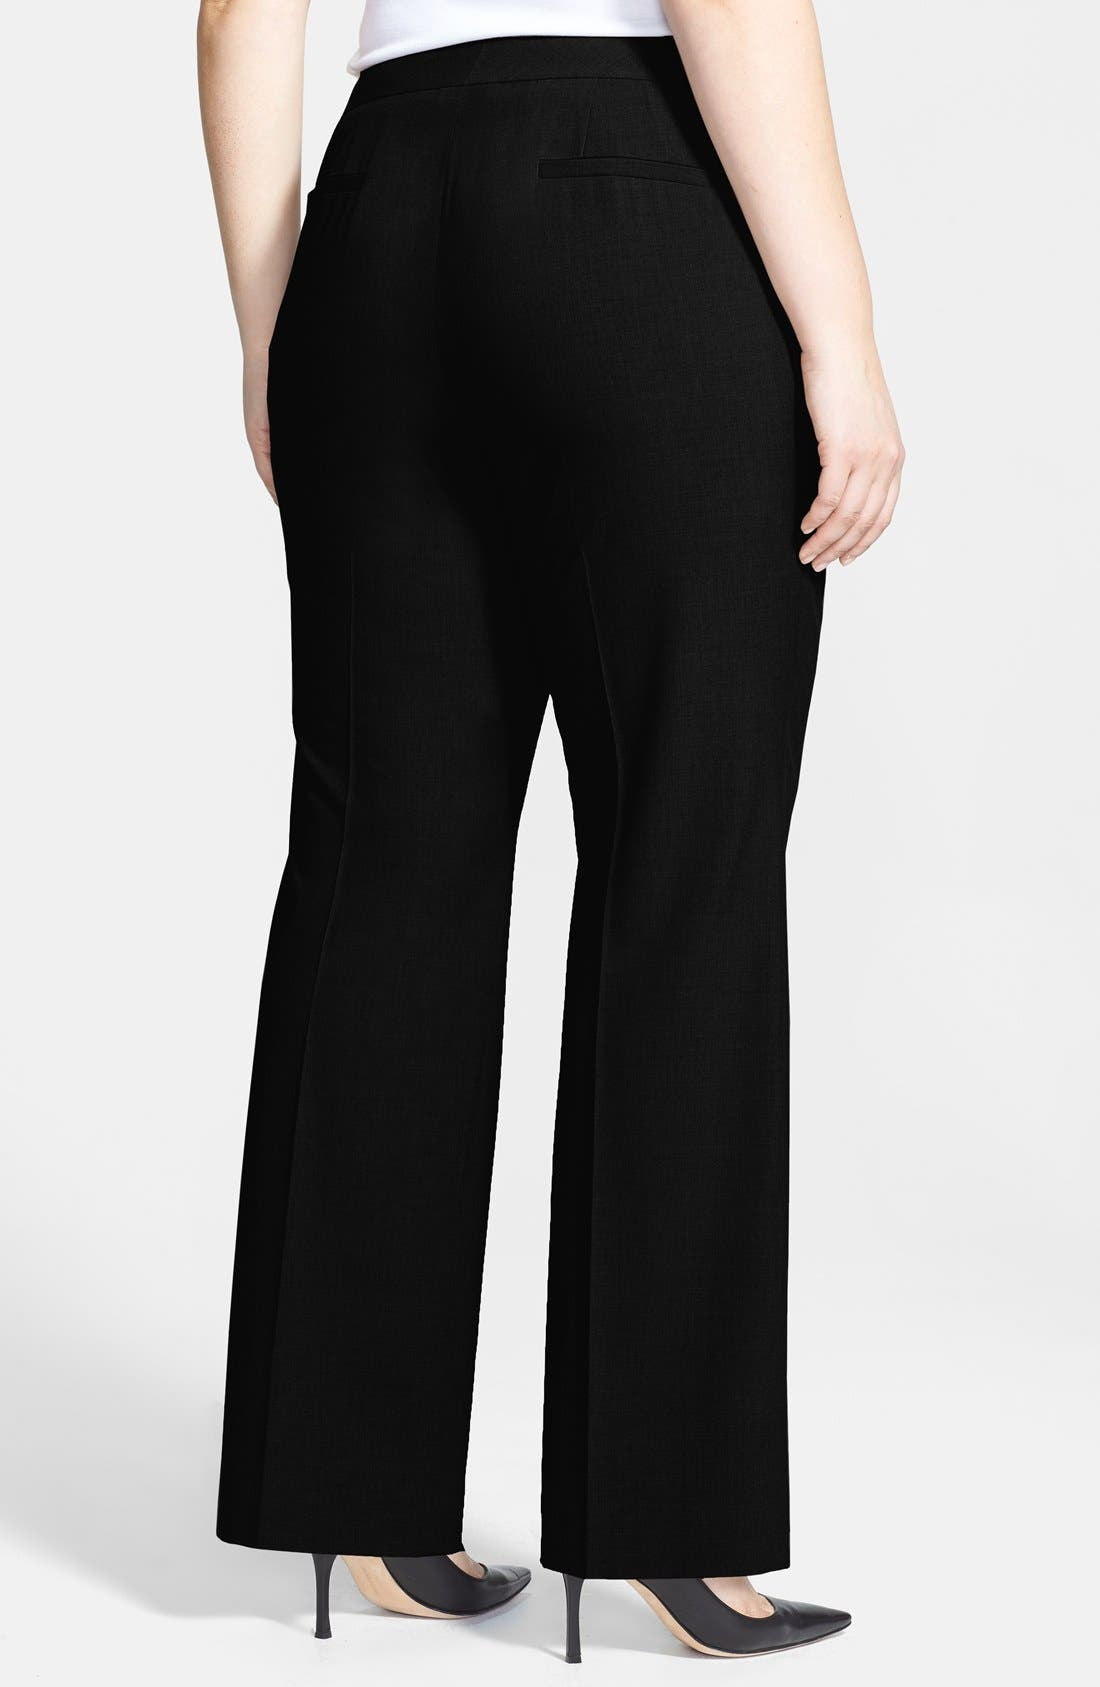 Alternate Image 3  - Sejour 'Ela' Curvy Fit Pants (Plus Size & Petite Plus)